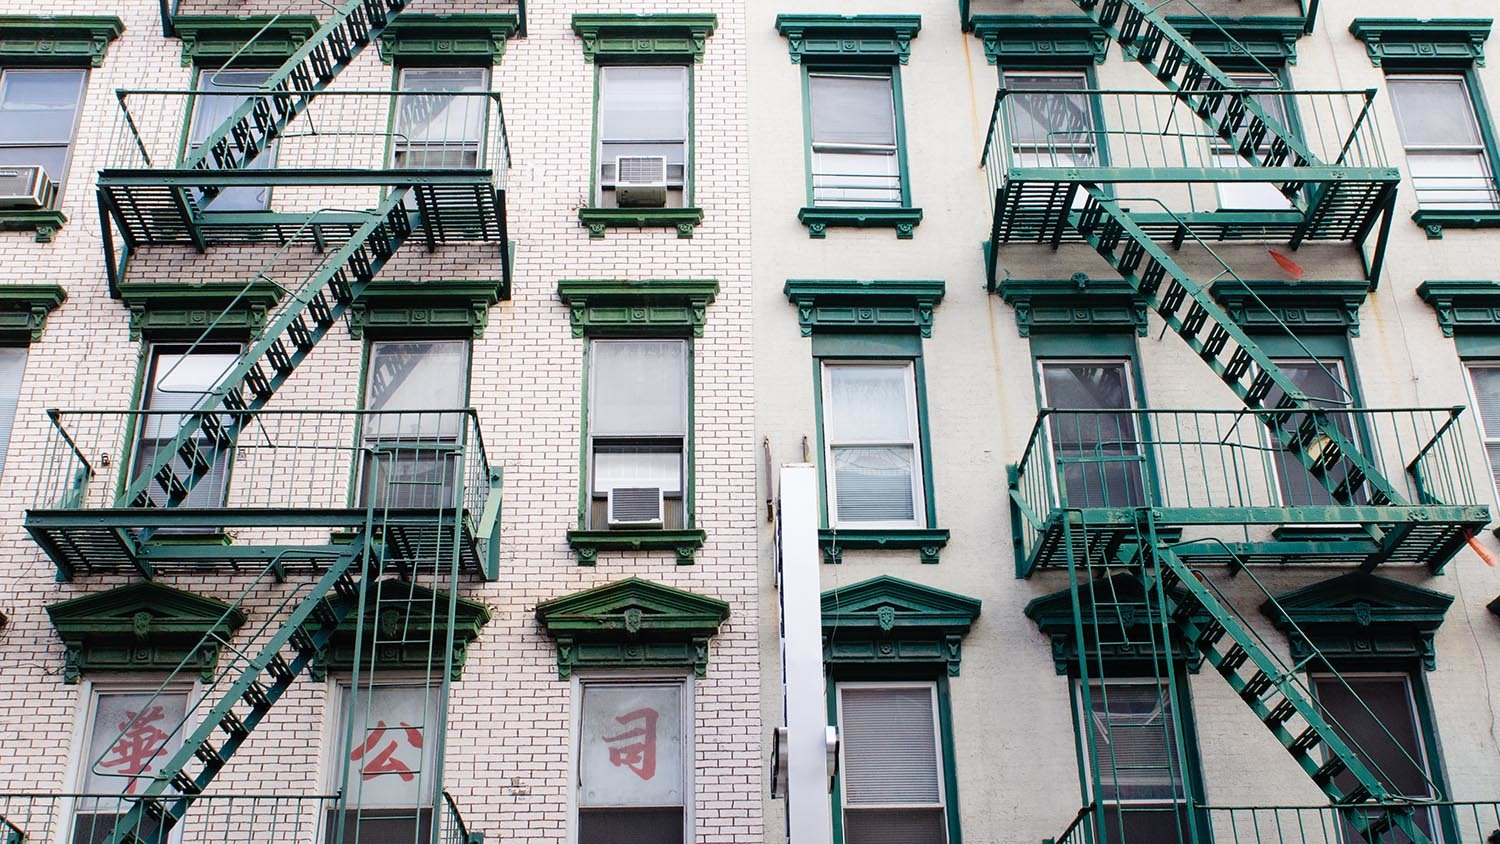 Beautiful photos of NYC's iconic fire escapes